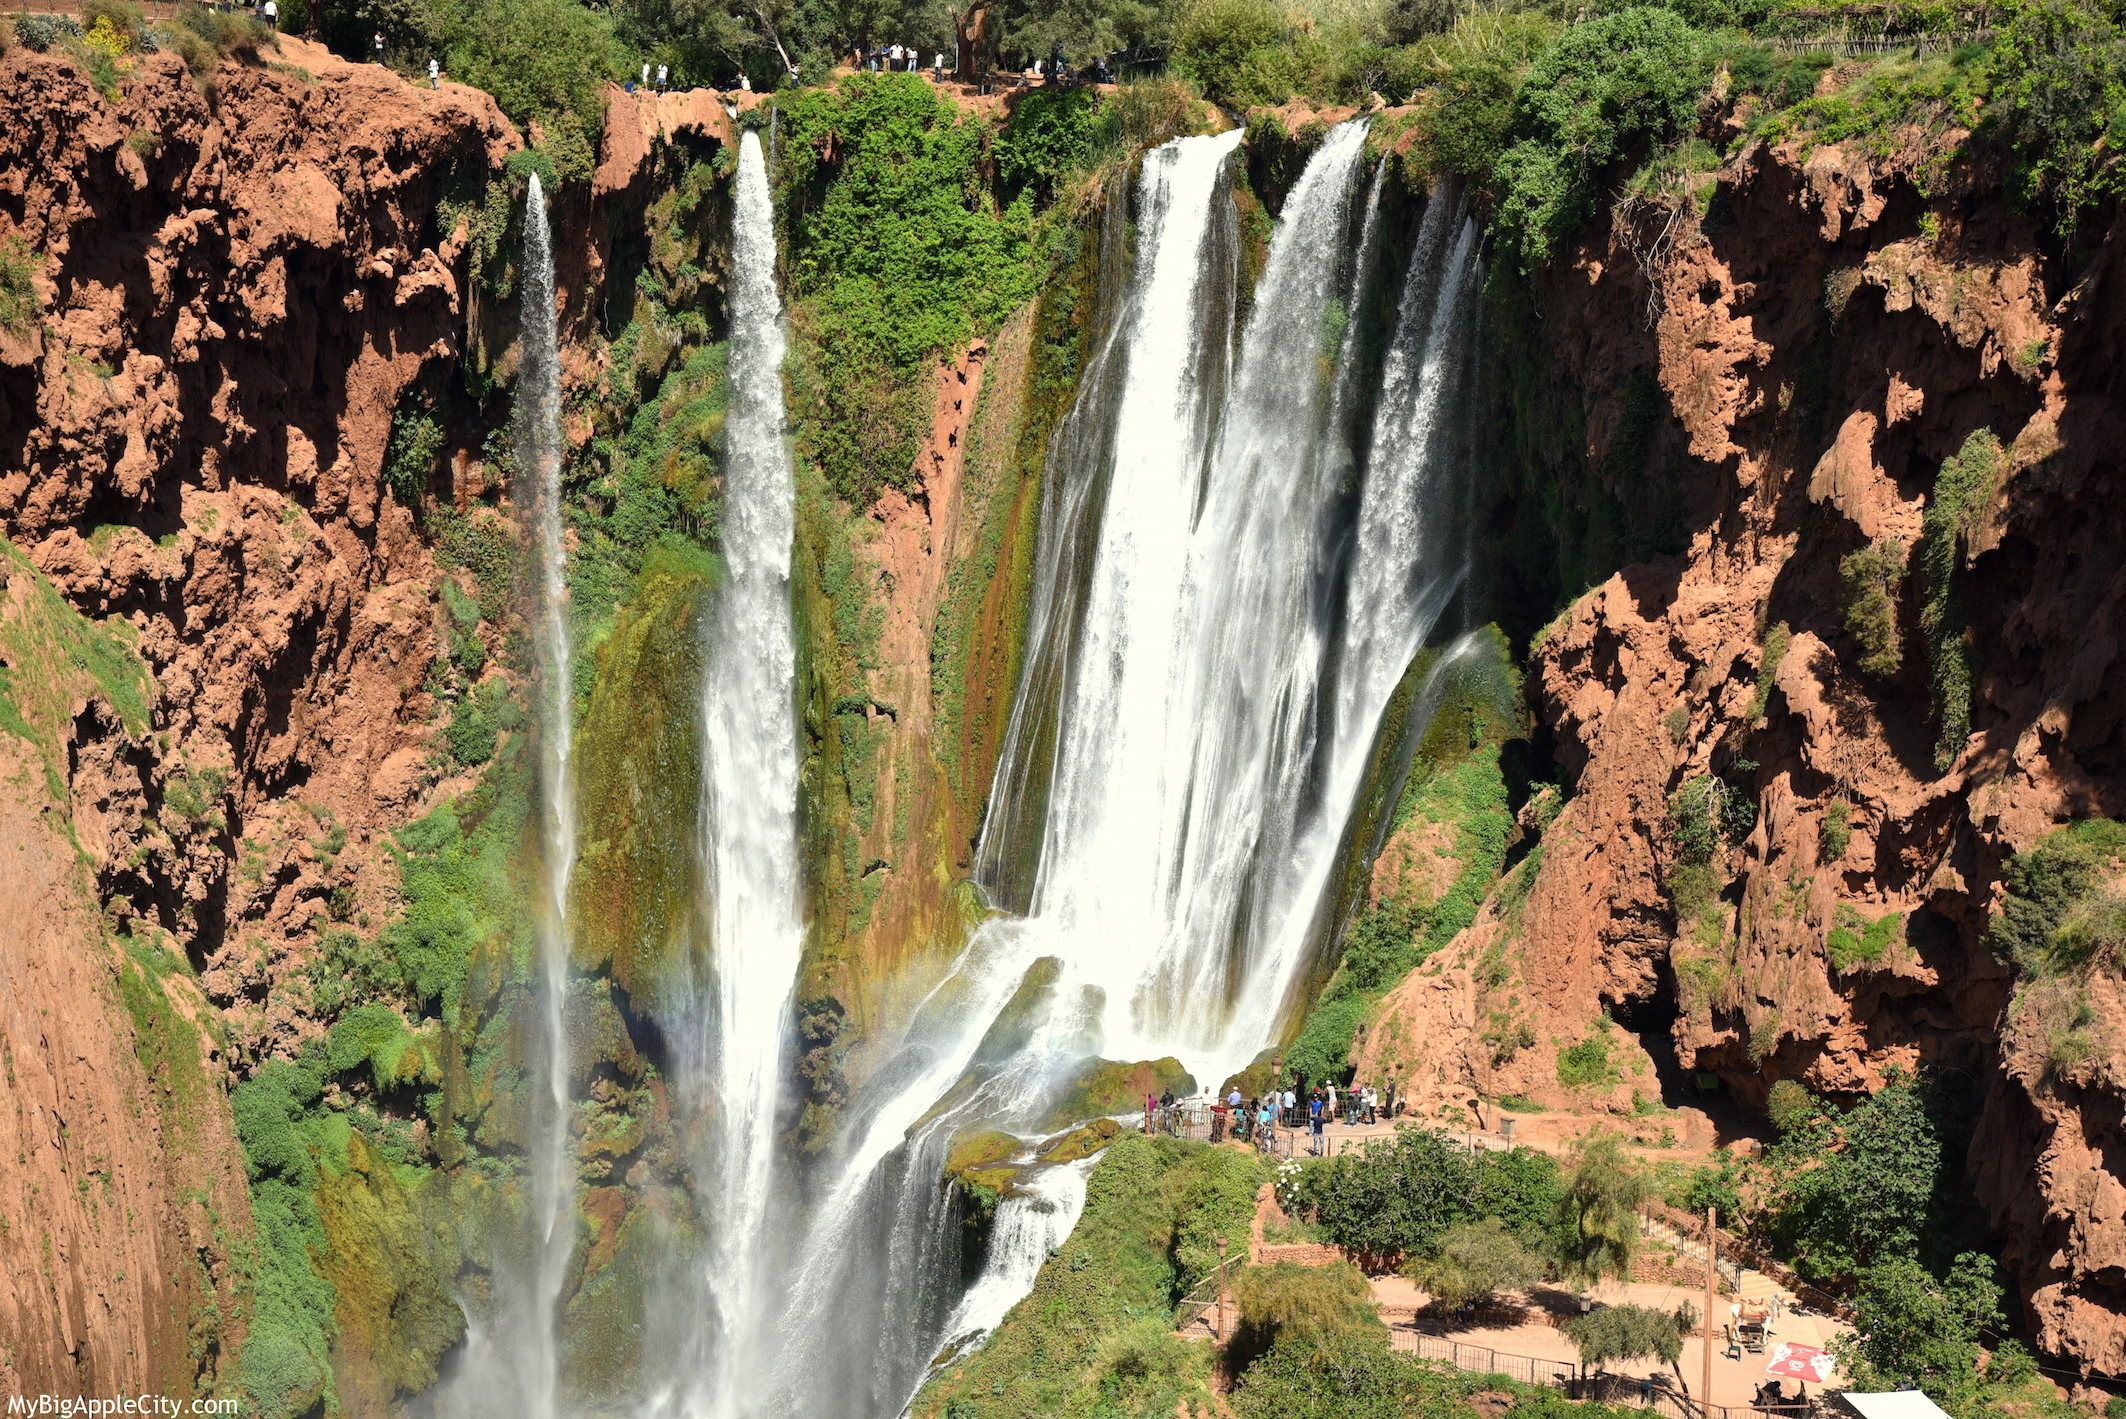 Ouzoud-Waterfalls-Marrakech-Travel-Blogger-2016-MyBigAppleCity